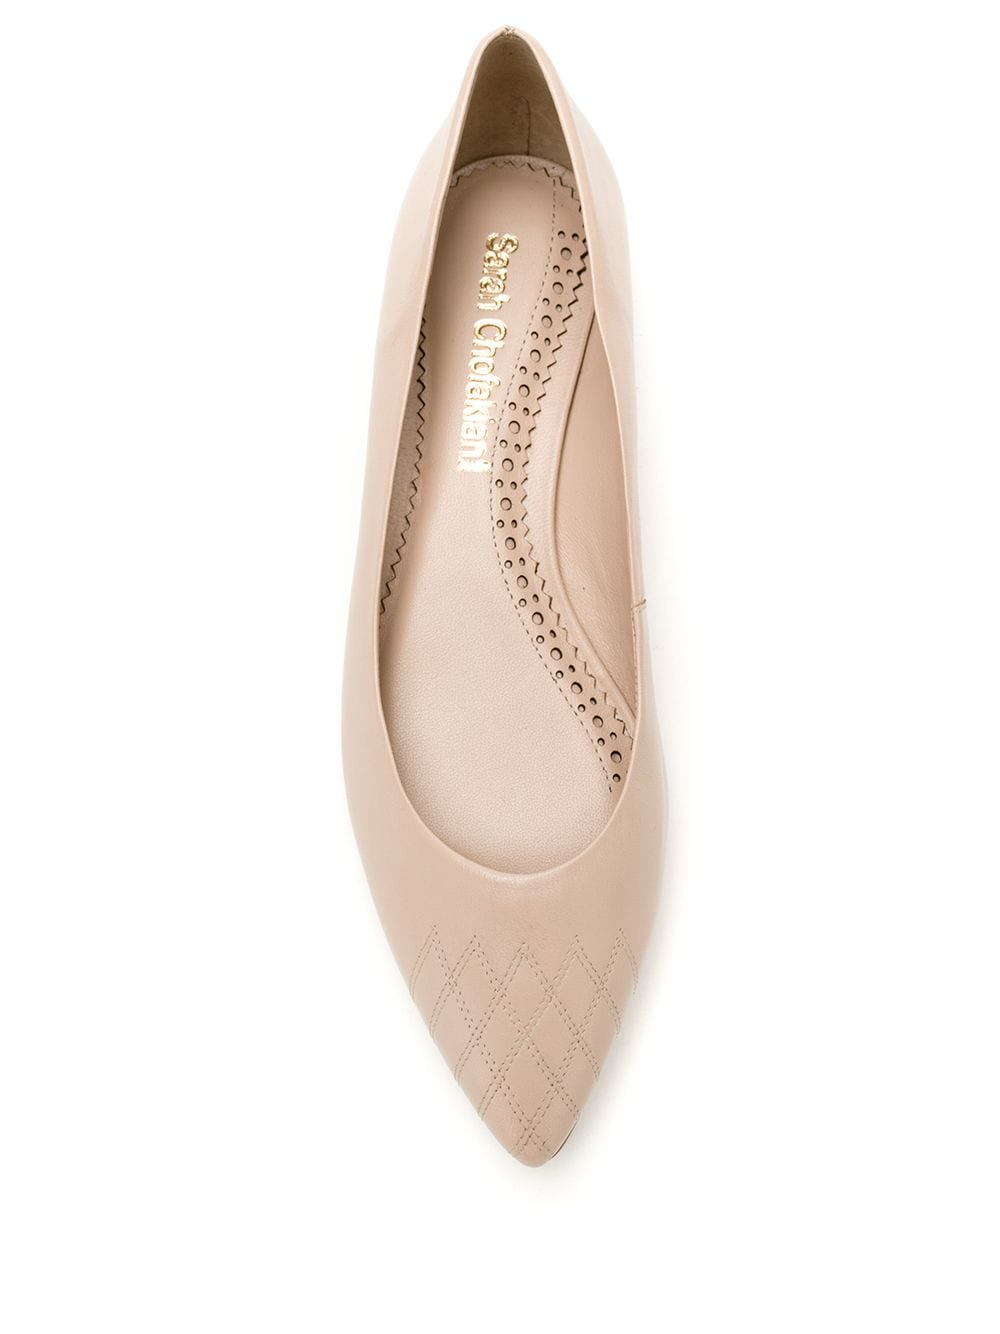 Sarah Chofakian Greasy leather flats - Neutrals